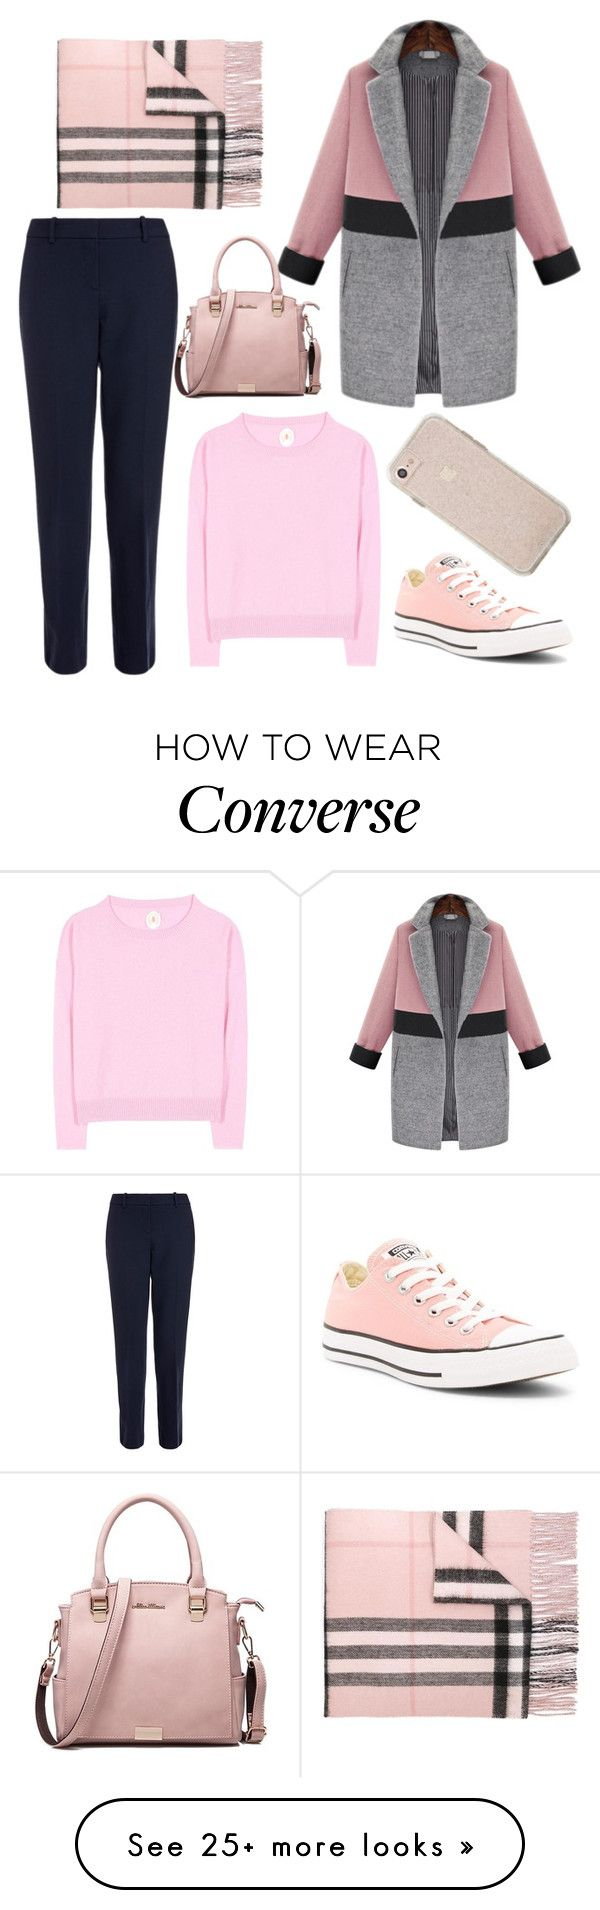 """Untitled #109"" by anya2410 on Polyvore featuring Theory, Burberry, Jardin des Orangers and Converse"